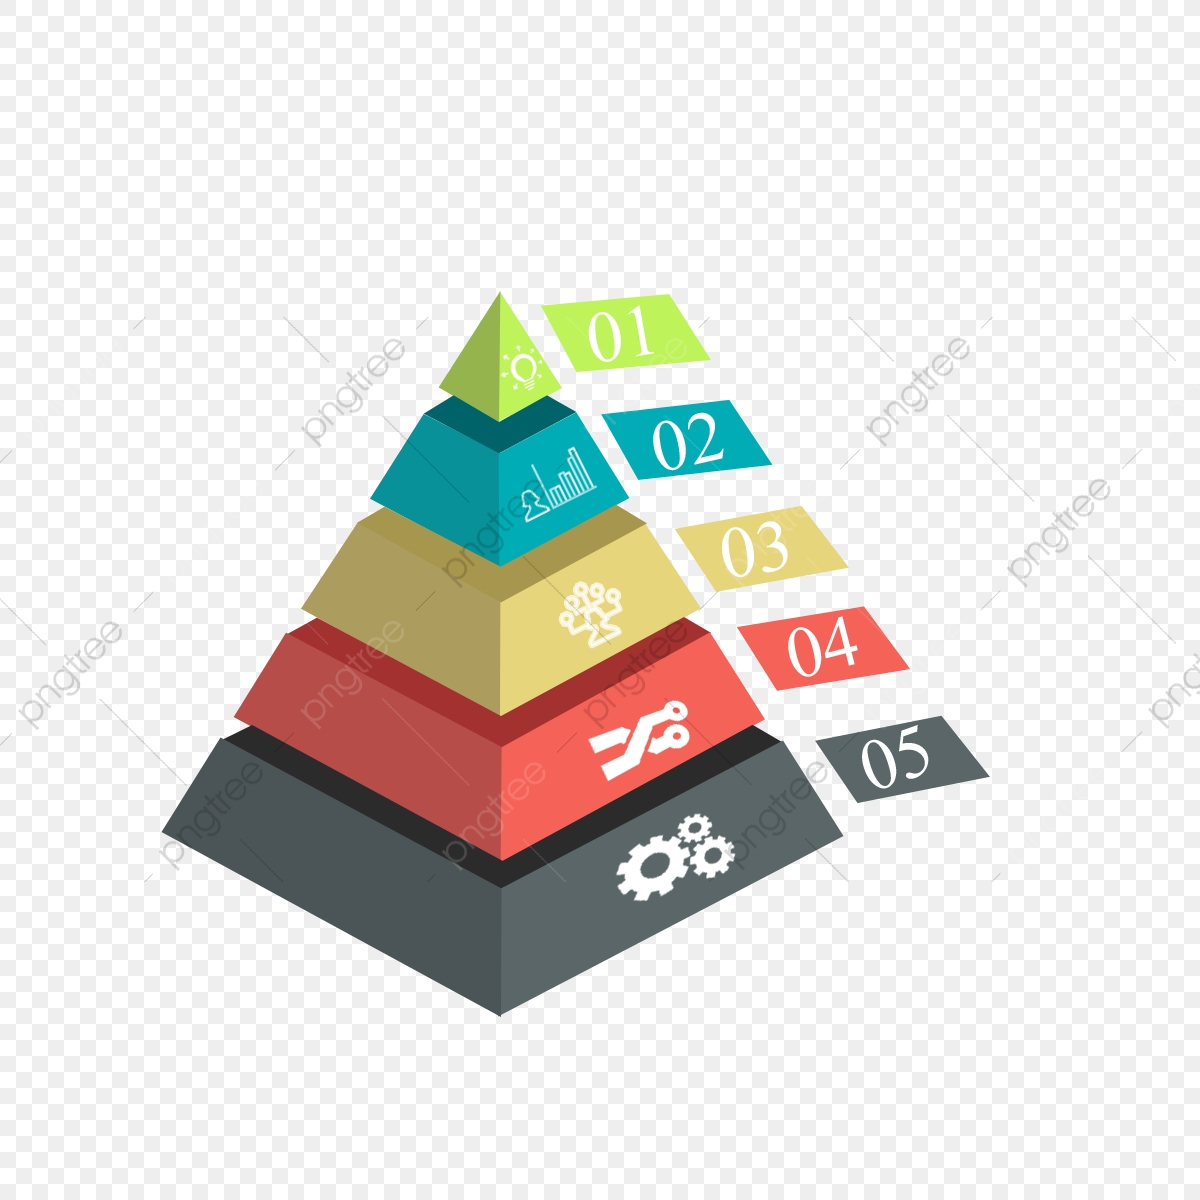 3d Pyramid Infographic Vector Design Free, Free, Download.